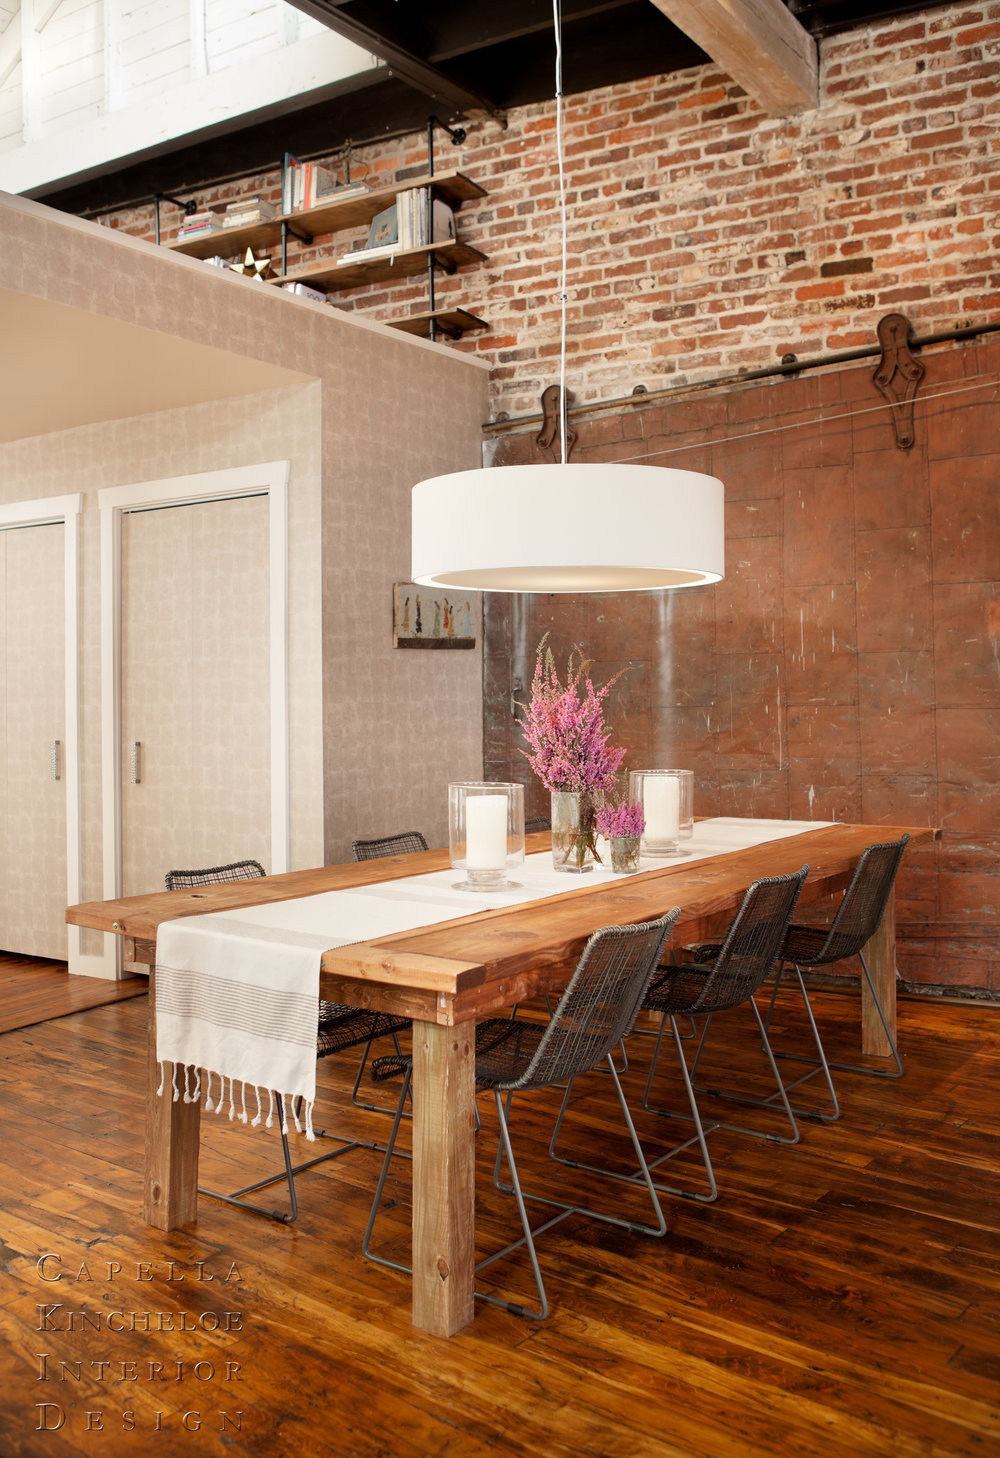 Warehouse living, dining room, open concept, loft, industrial dining room